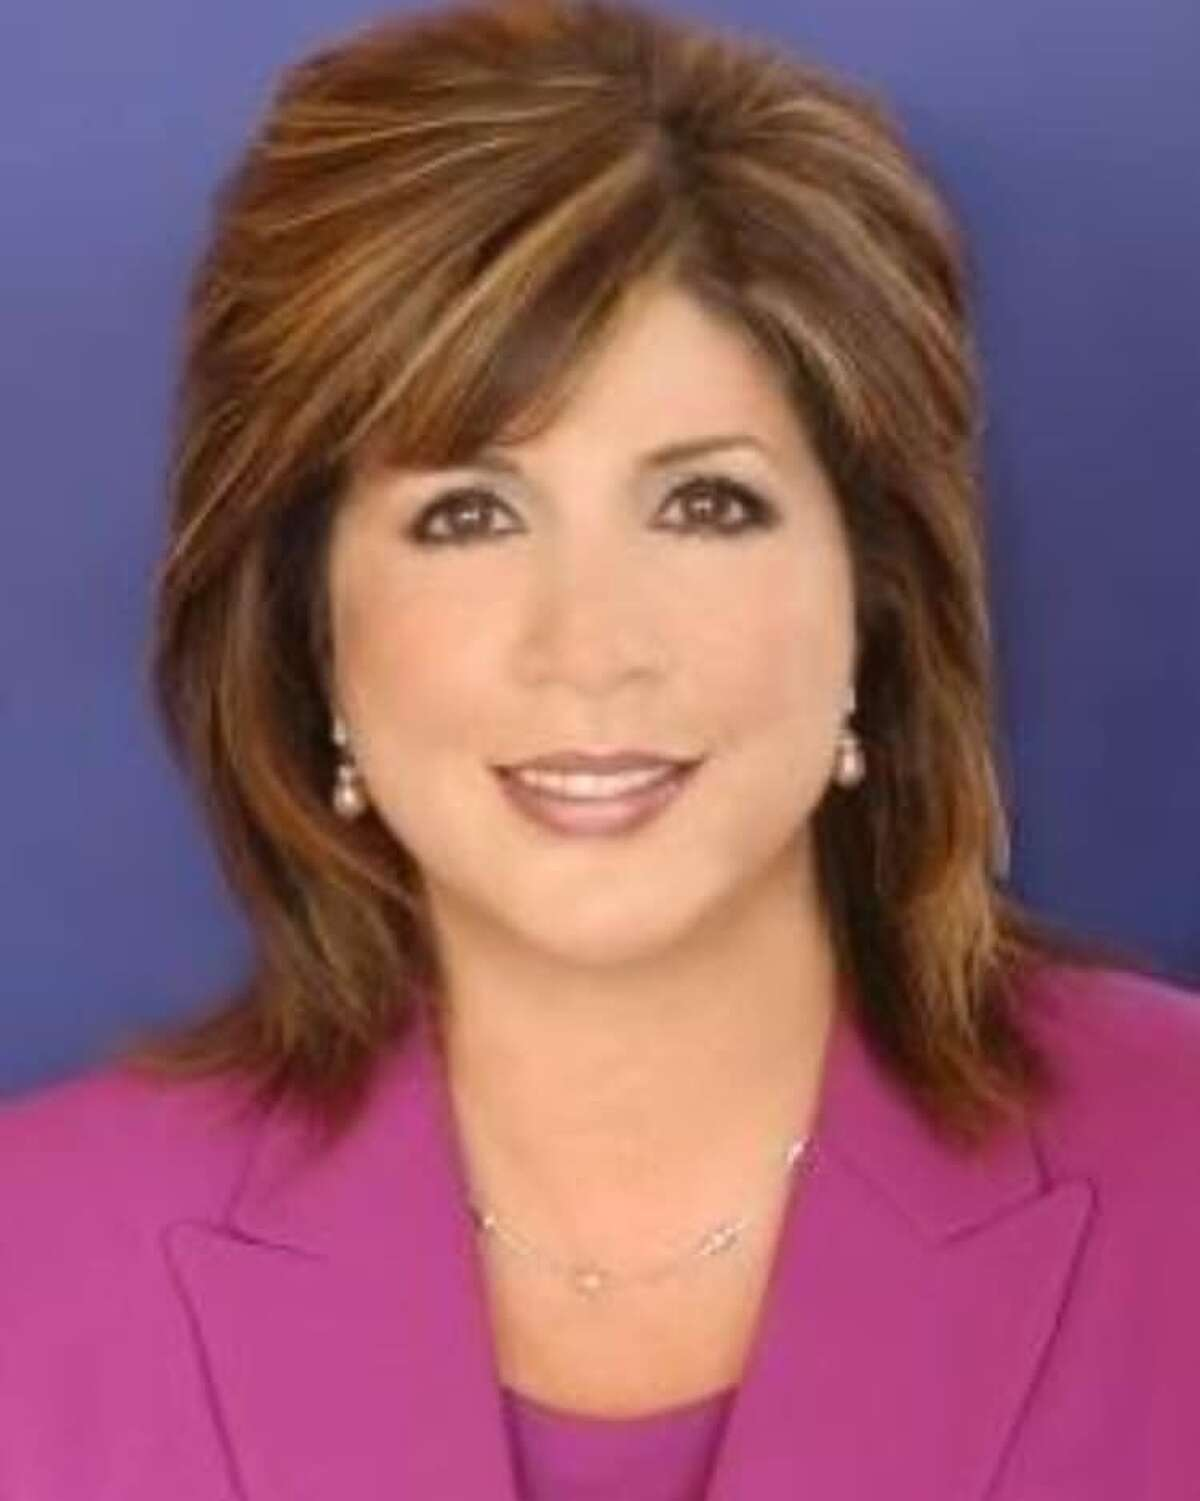 Rosenda Rios, a longtime San Antonio TV and radio journalist best know for her time at KSAT, died Thursday morning at a hospice in Houston. She was 62.